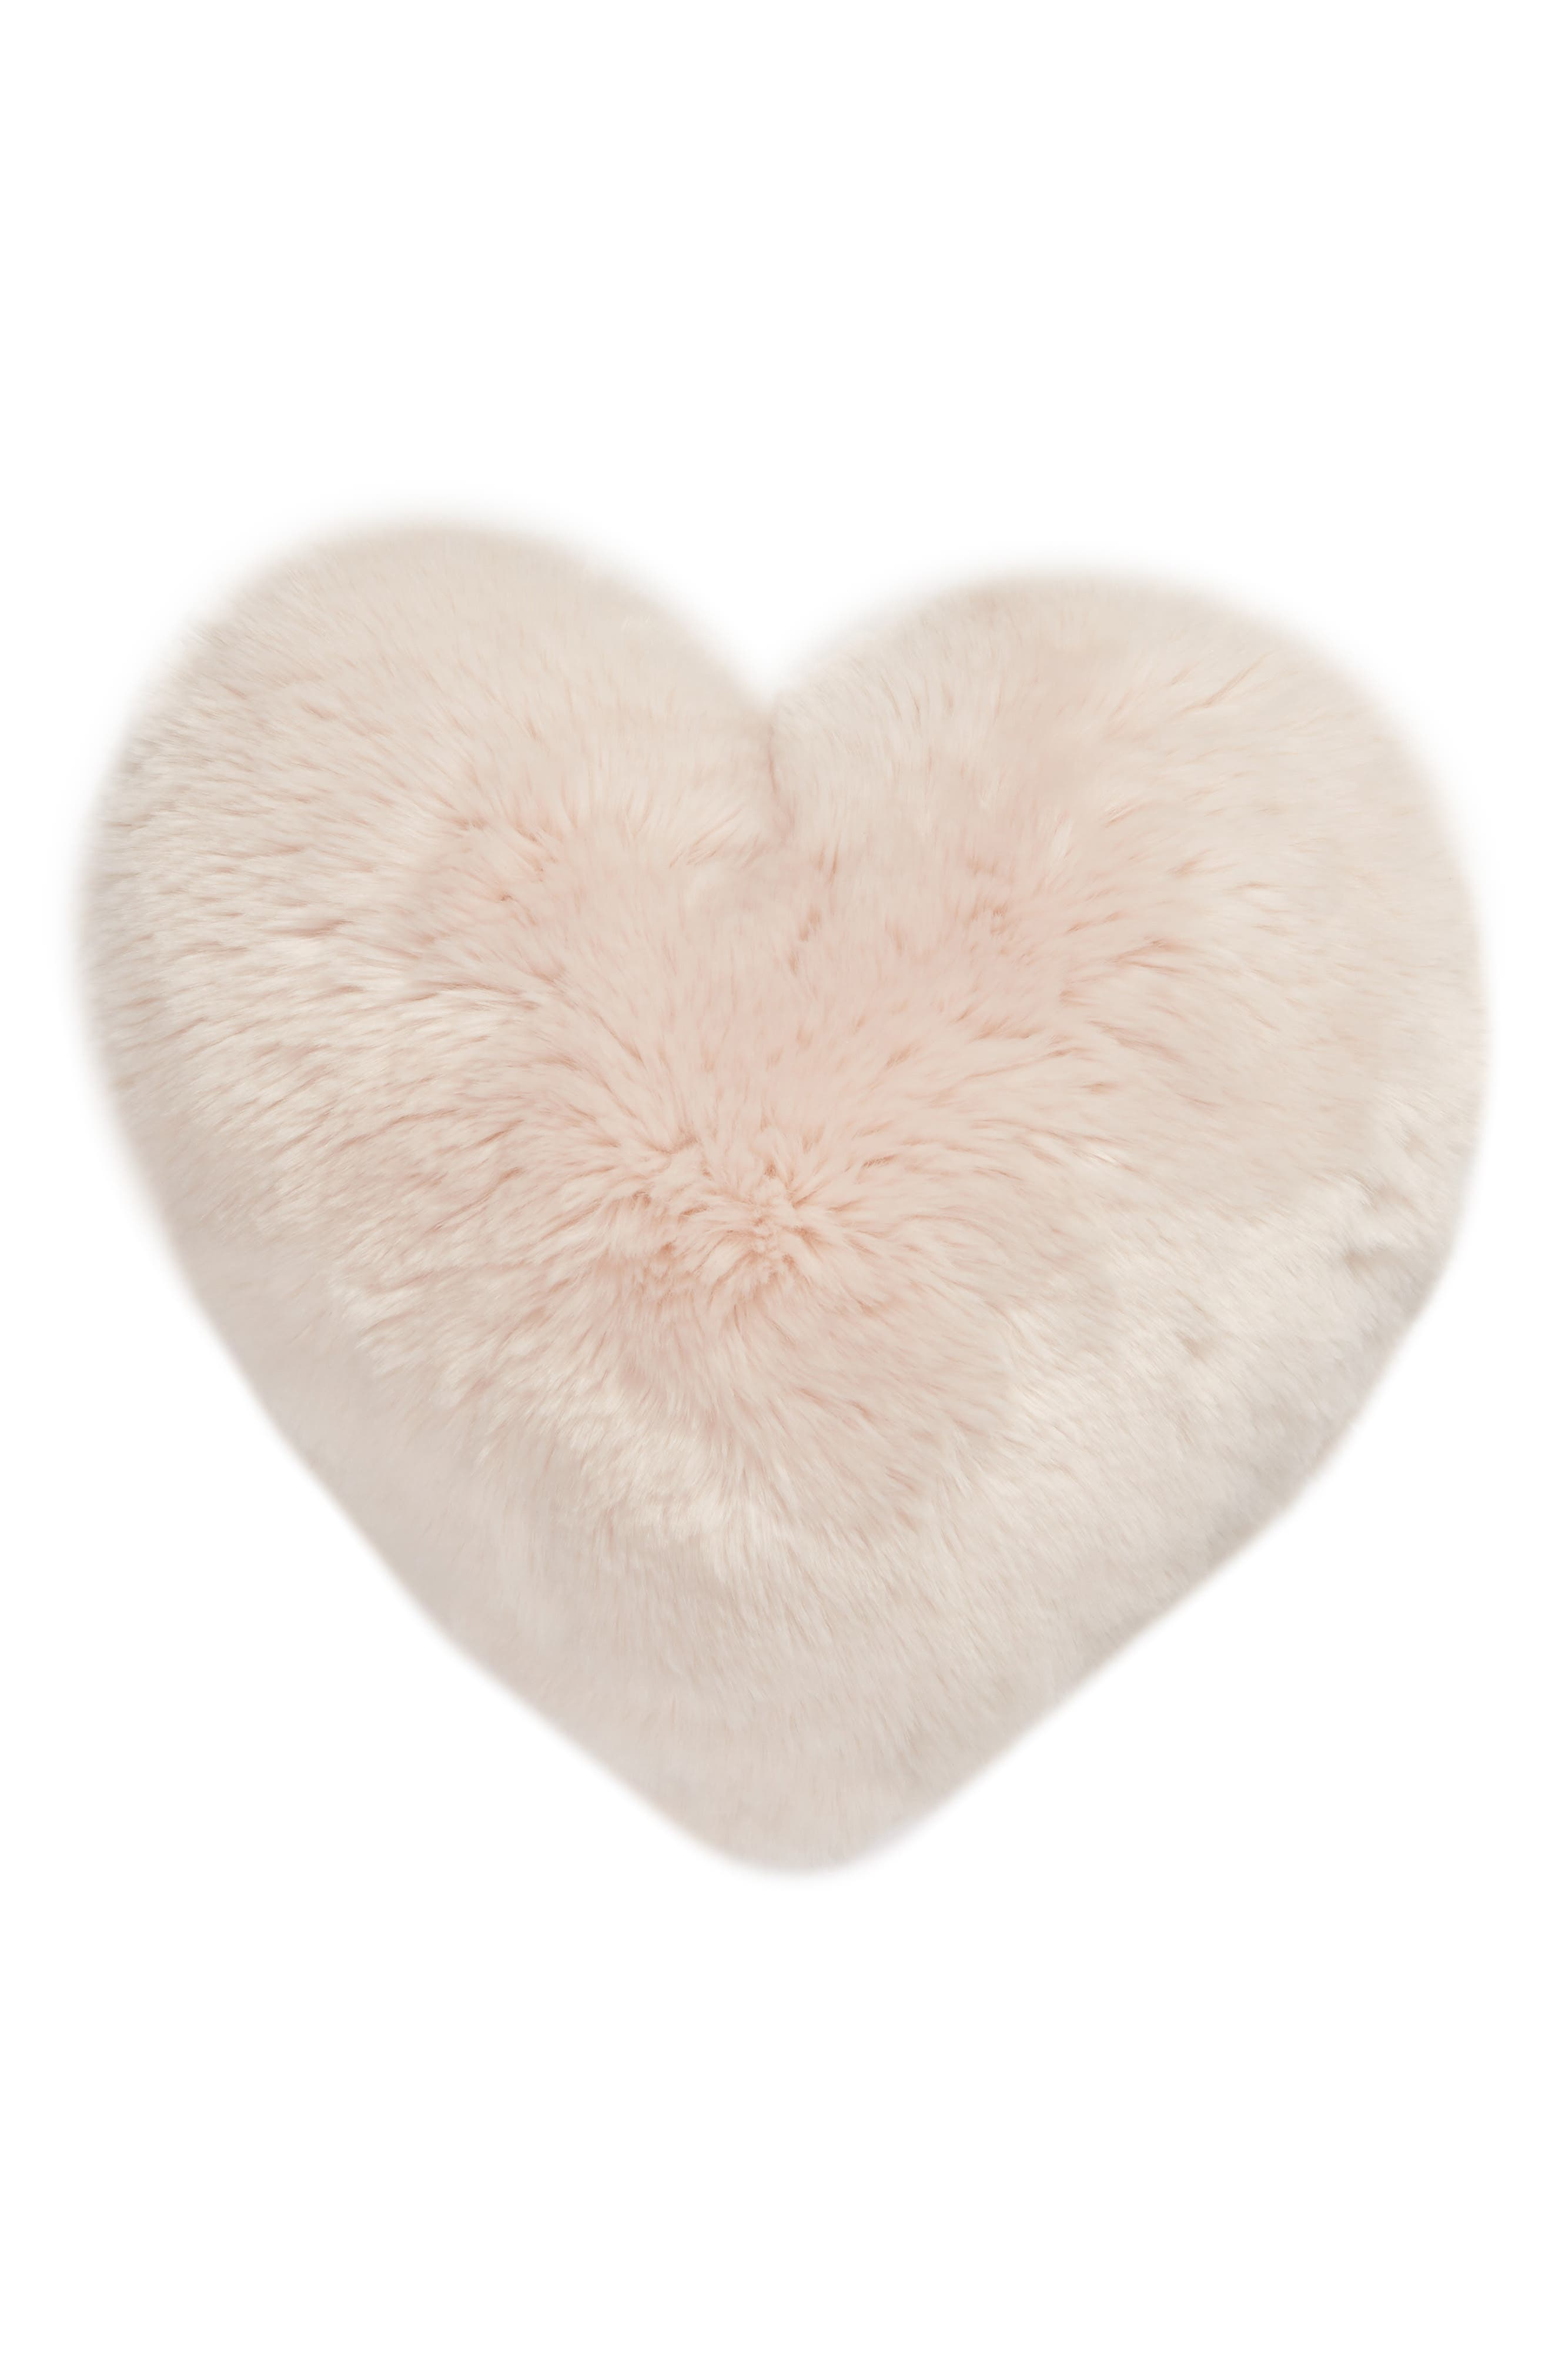 NORDSTROM AT HOME, Cuddle Up Faux Fur Heart Accent Pillow, Main thumbnail 1, color, 650